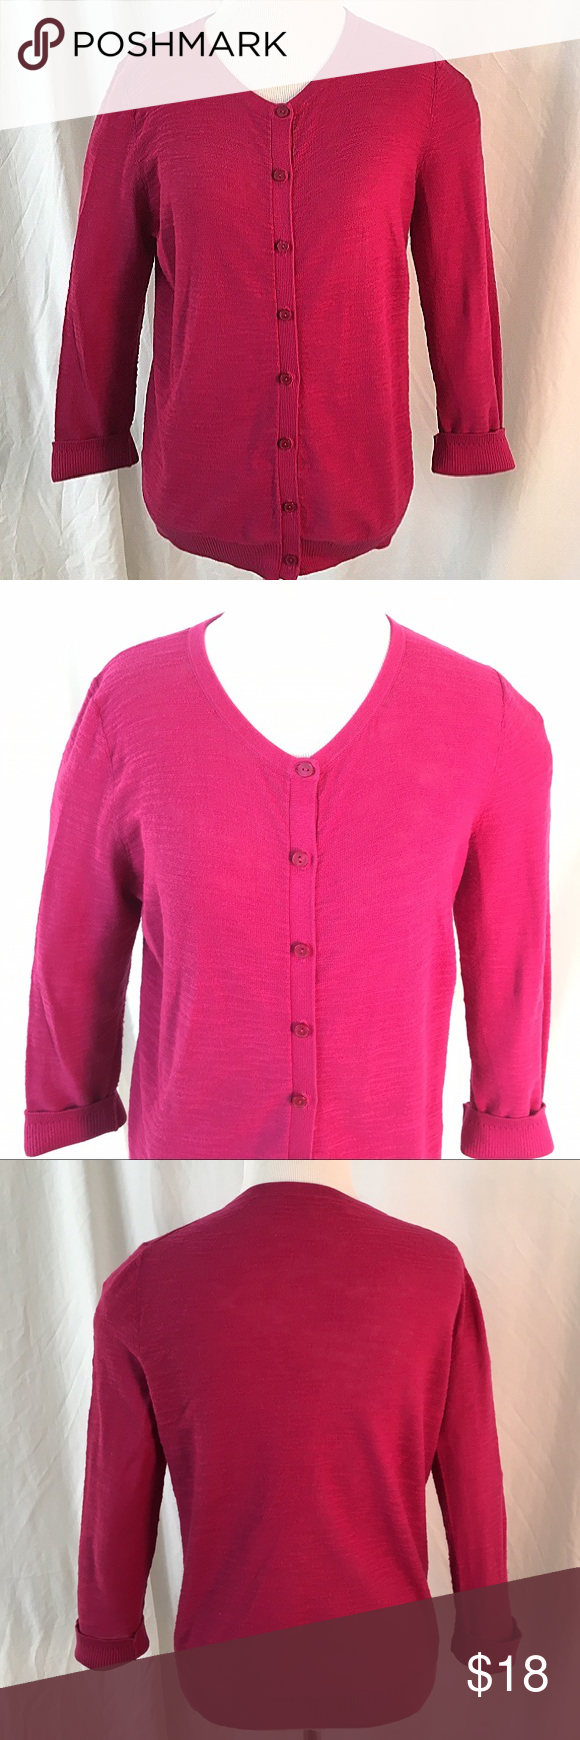 Ann Taylor Loft Fuchsia Sweater Cute fuchsia button down sweater ...